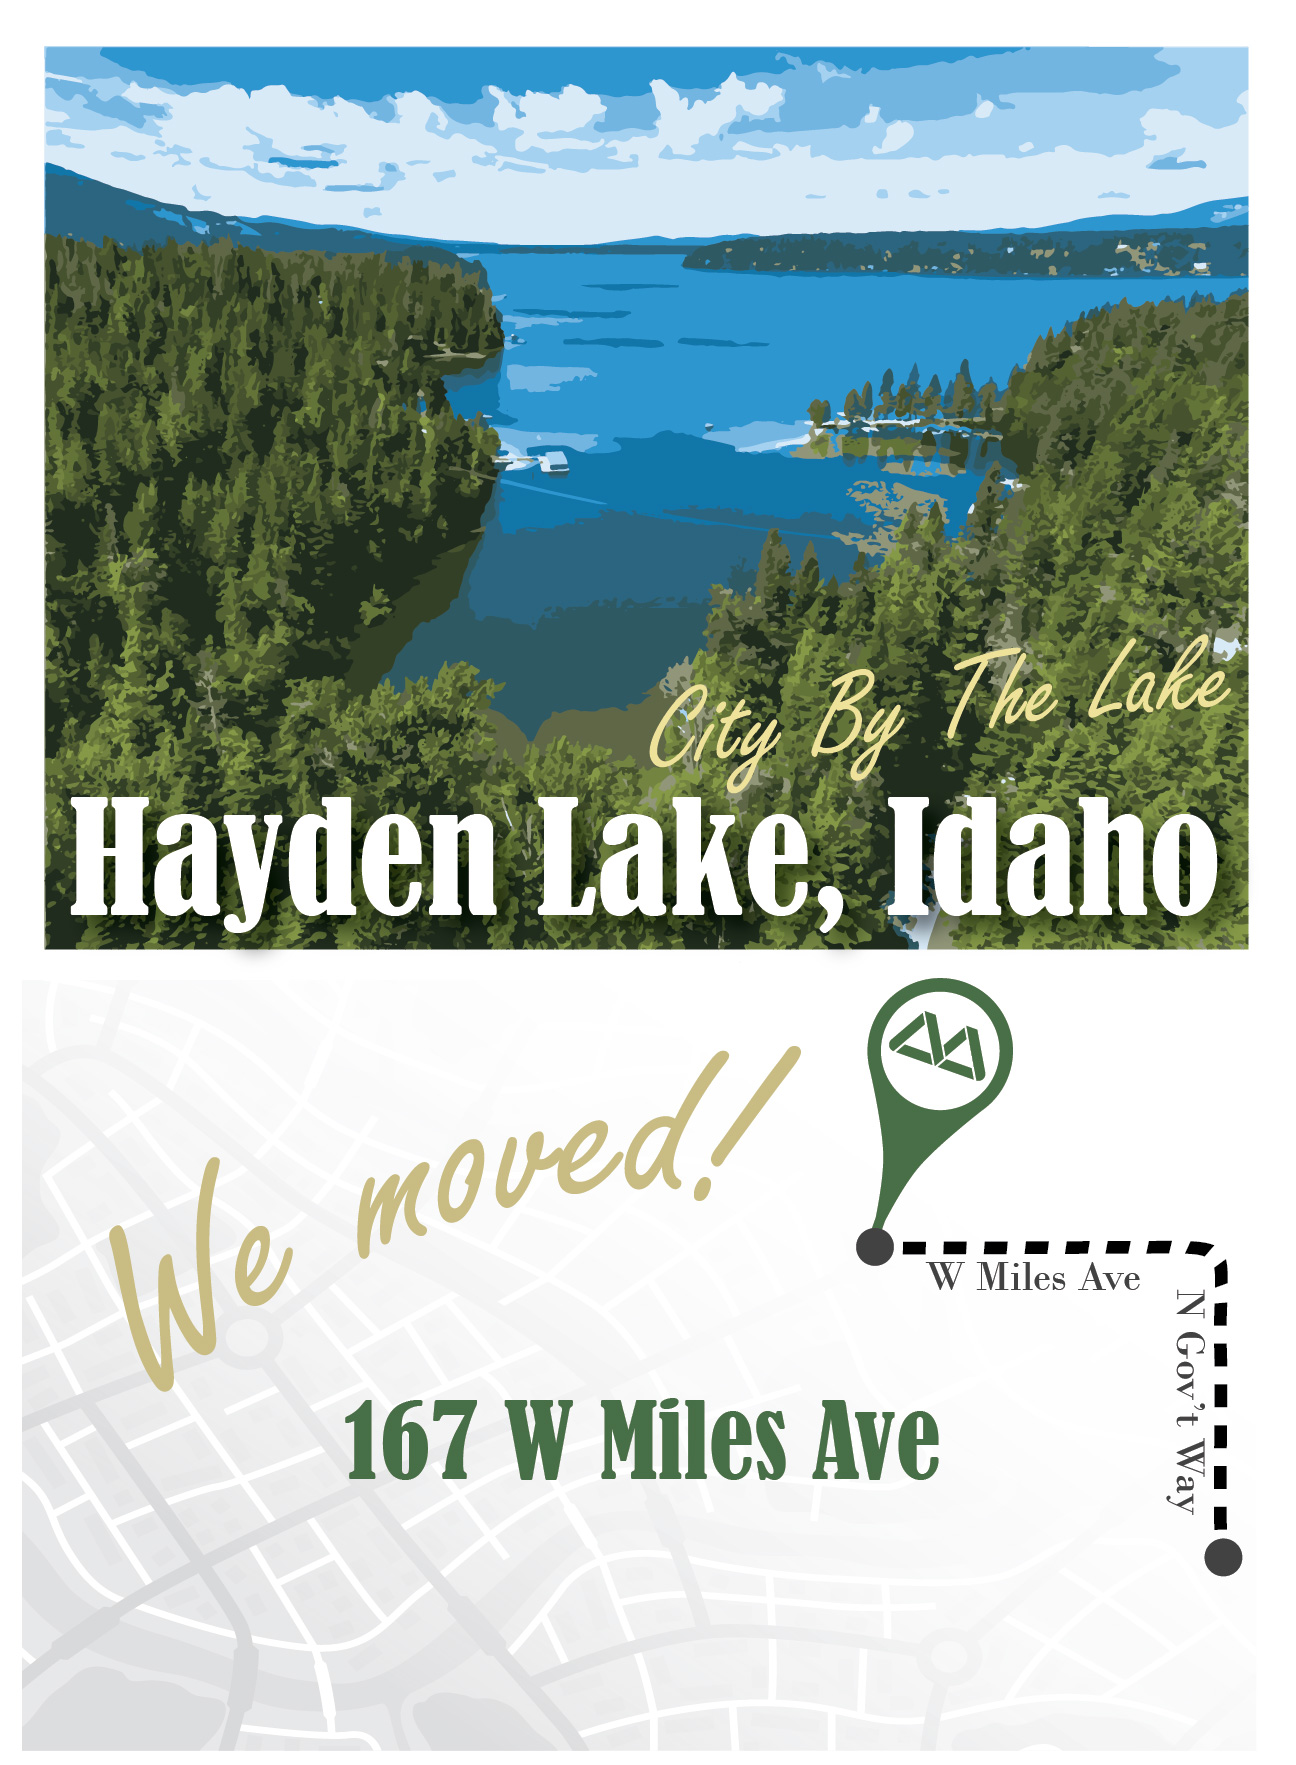 Hayden Lake move graphic